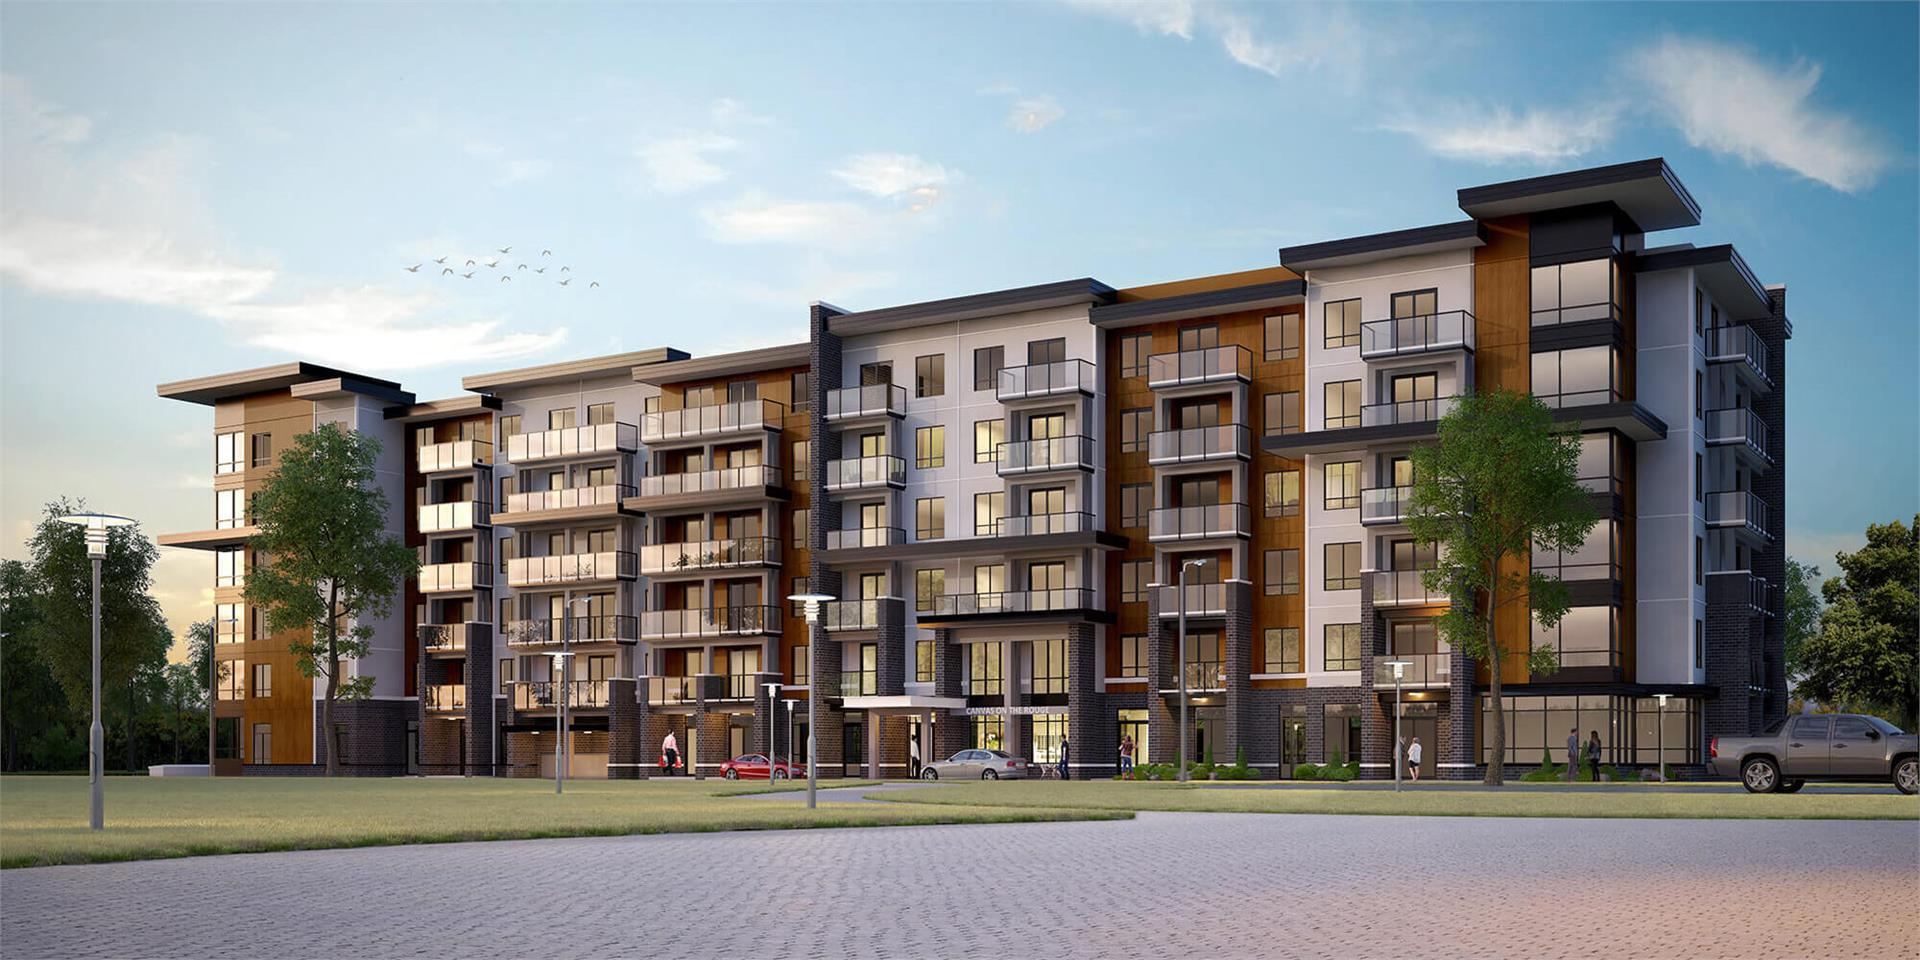 Rendering of Canvas on the Rouge Condos exterior with driveway.